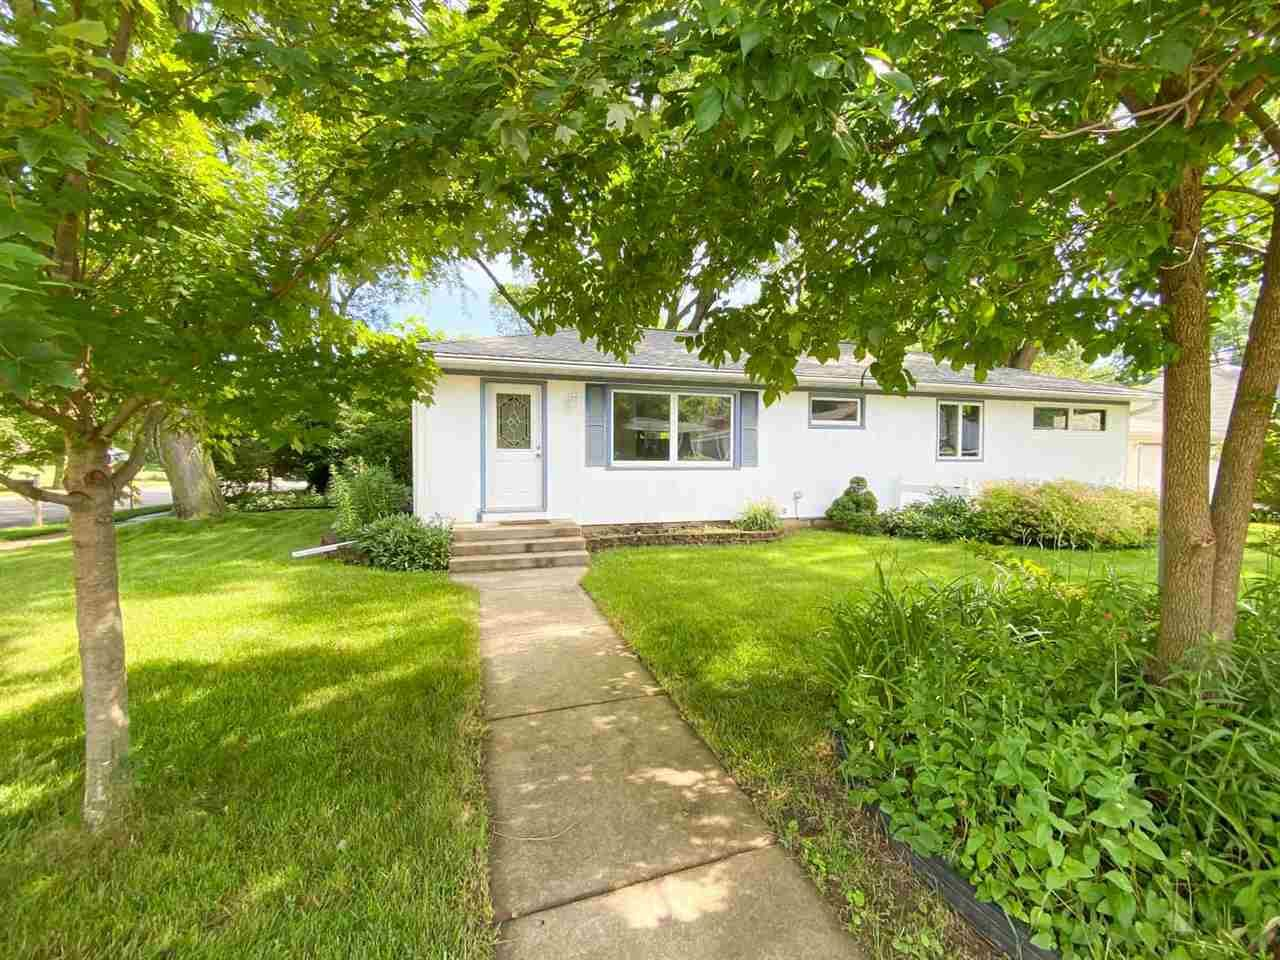 401 N Rosa Rd, Madison, WI 53705 - #: 1886252